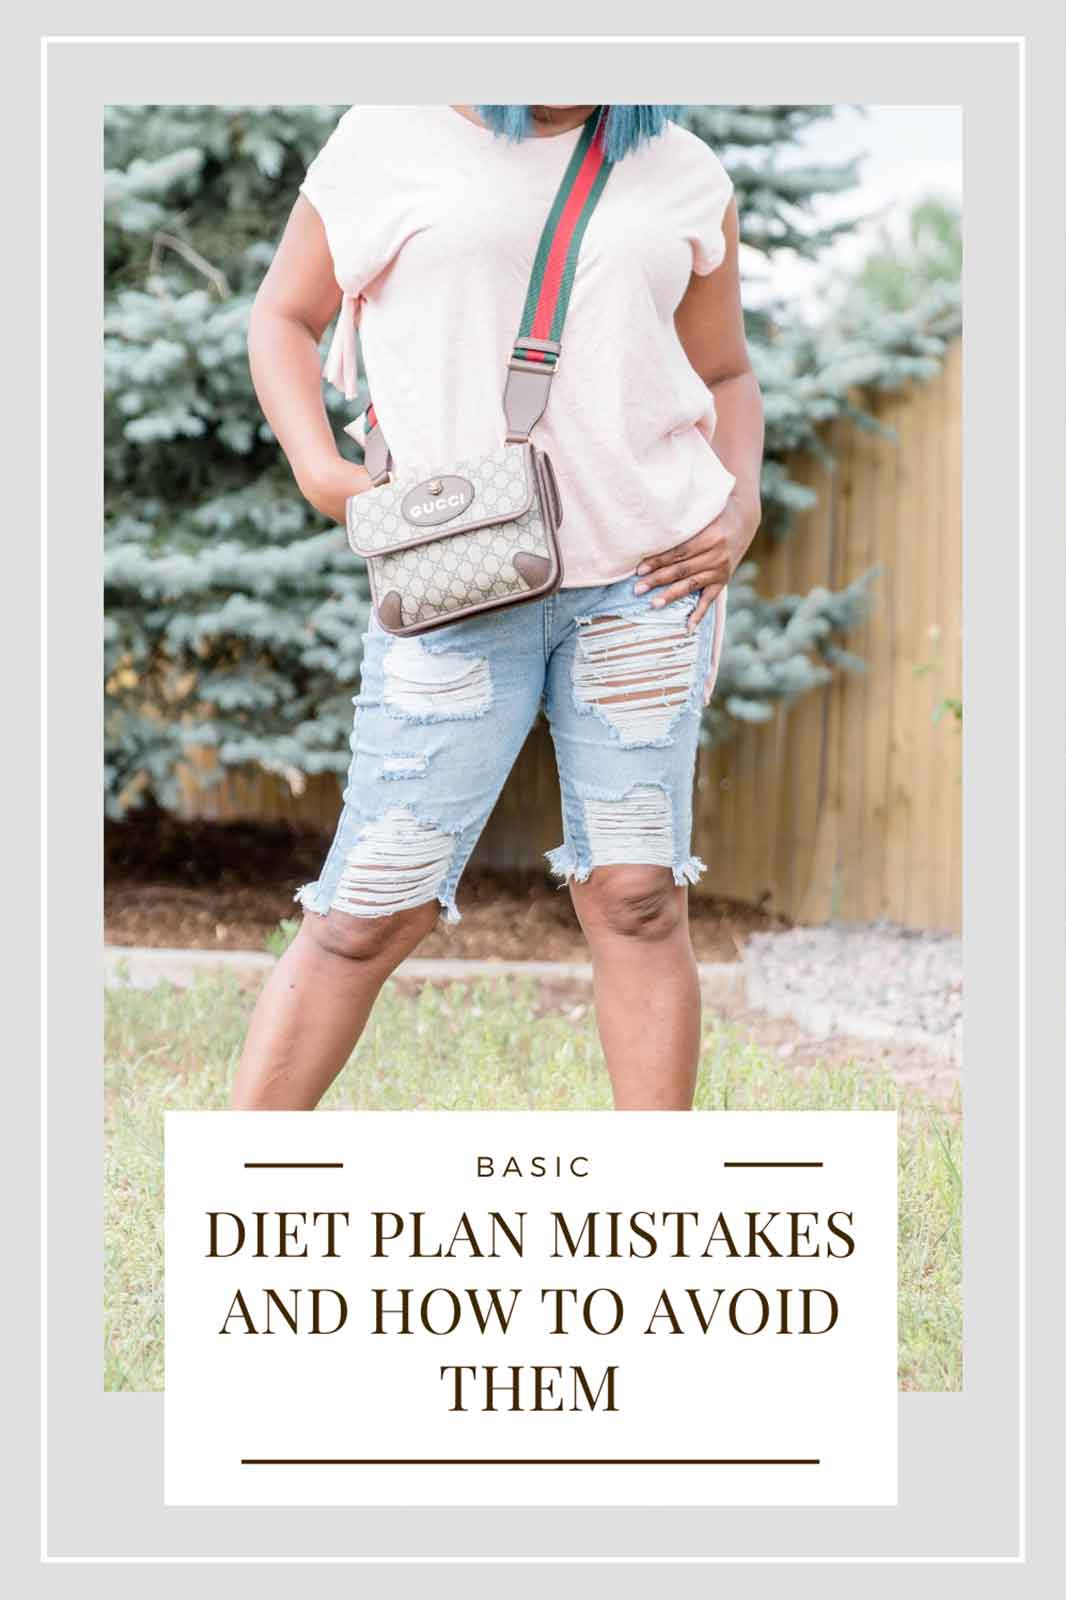 Basic Diet Plan Mistakes and How to Avoid Them